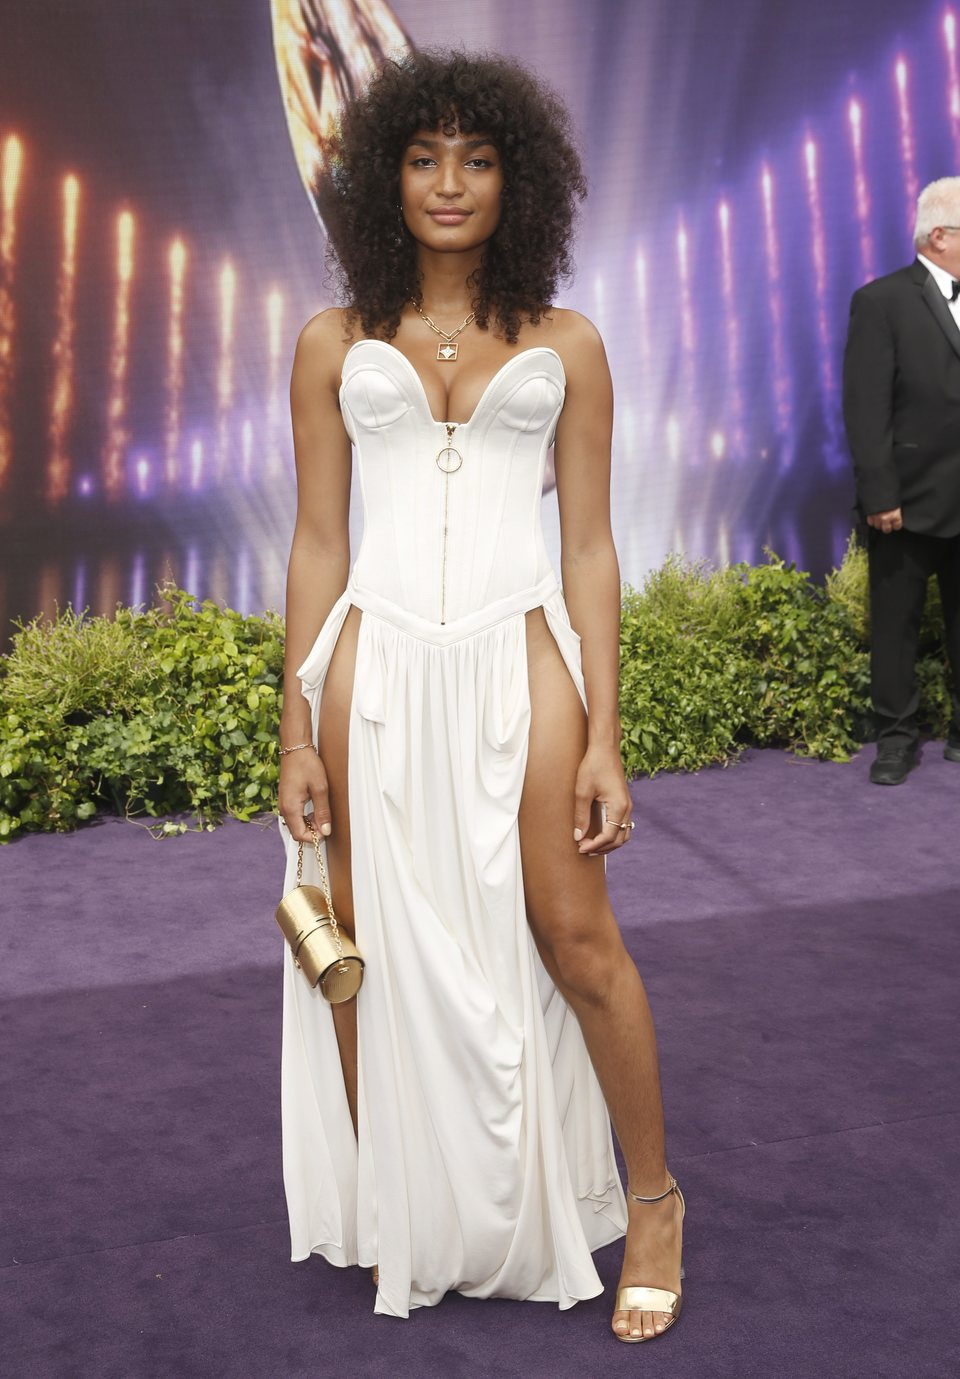 Indya Moore at the Emmy Awards 2019 red carpet